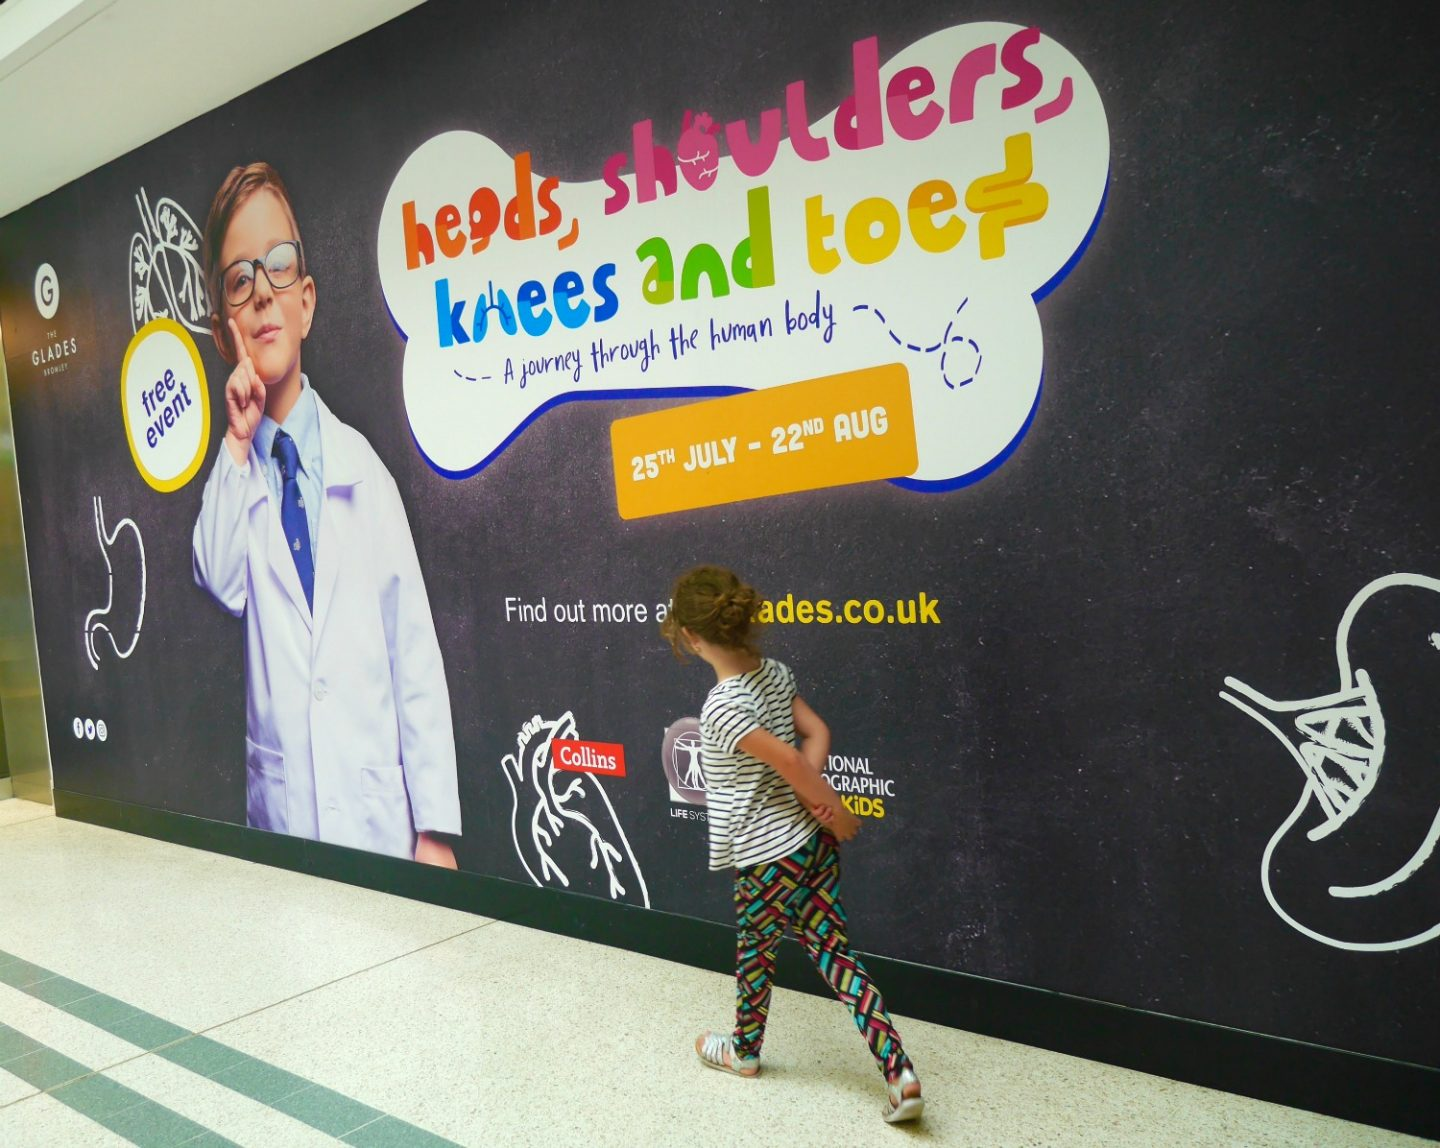 Heads, Shoulders, Knees and Toes at The Glades, Bromley - poster